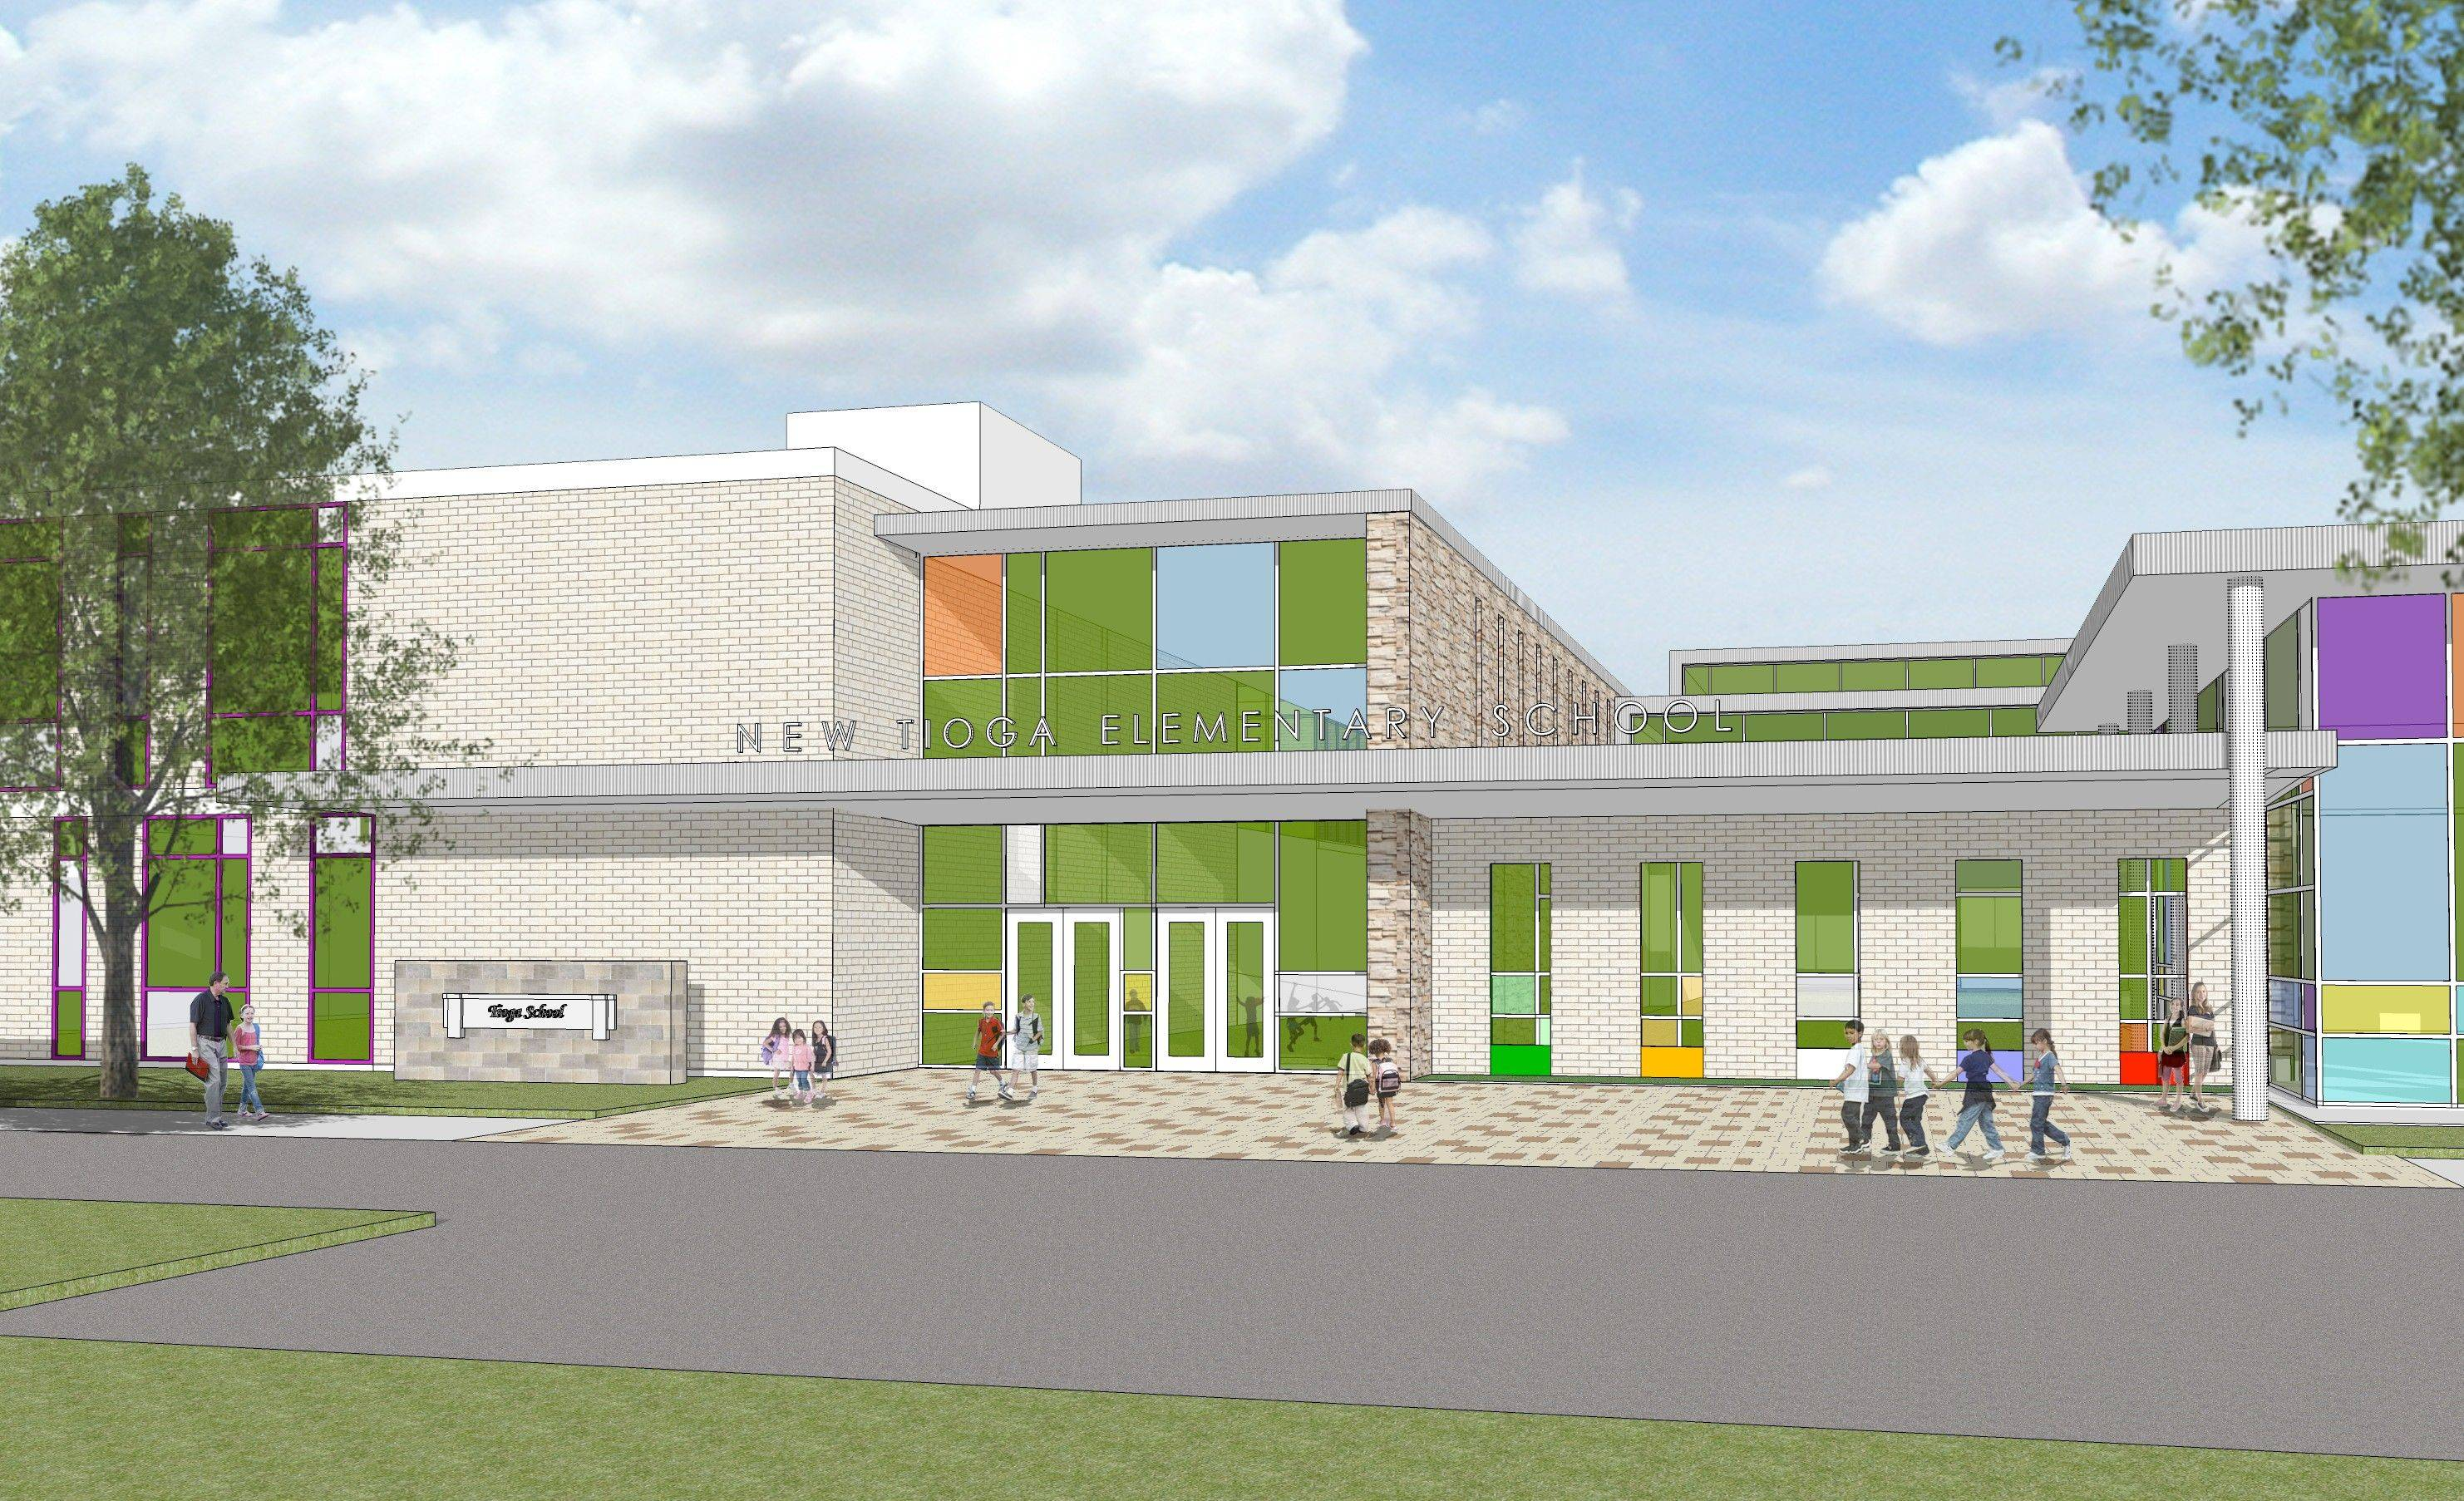 The Bensenville Elementary District 2 school board chose this as the new exterior for Tioga School.